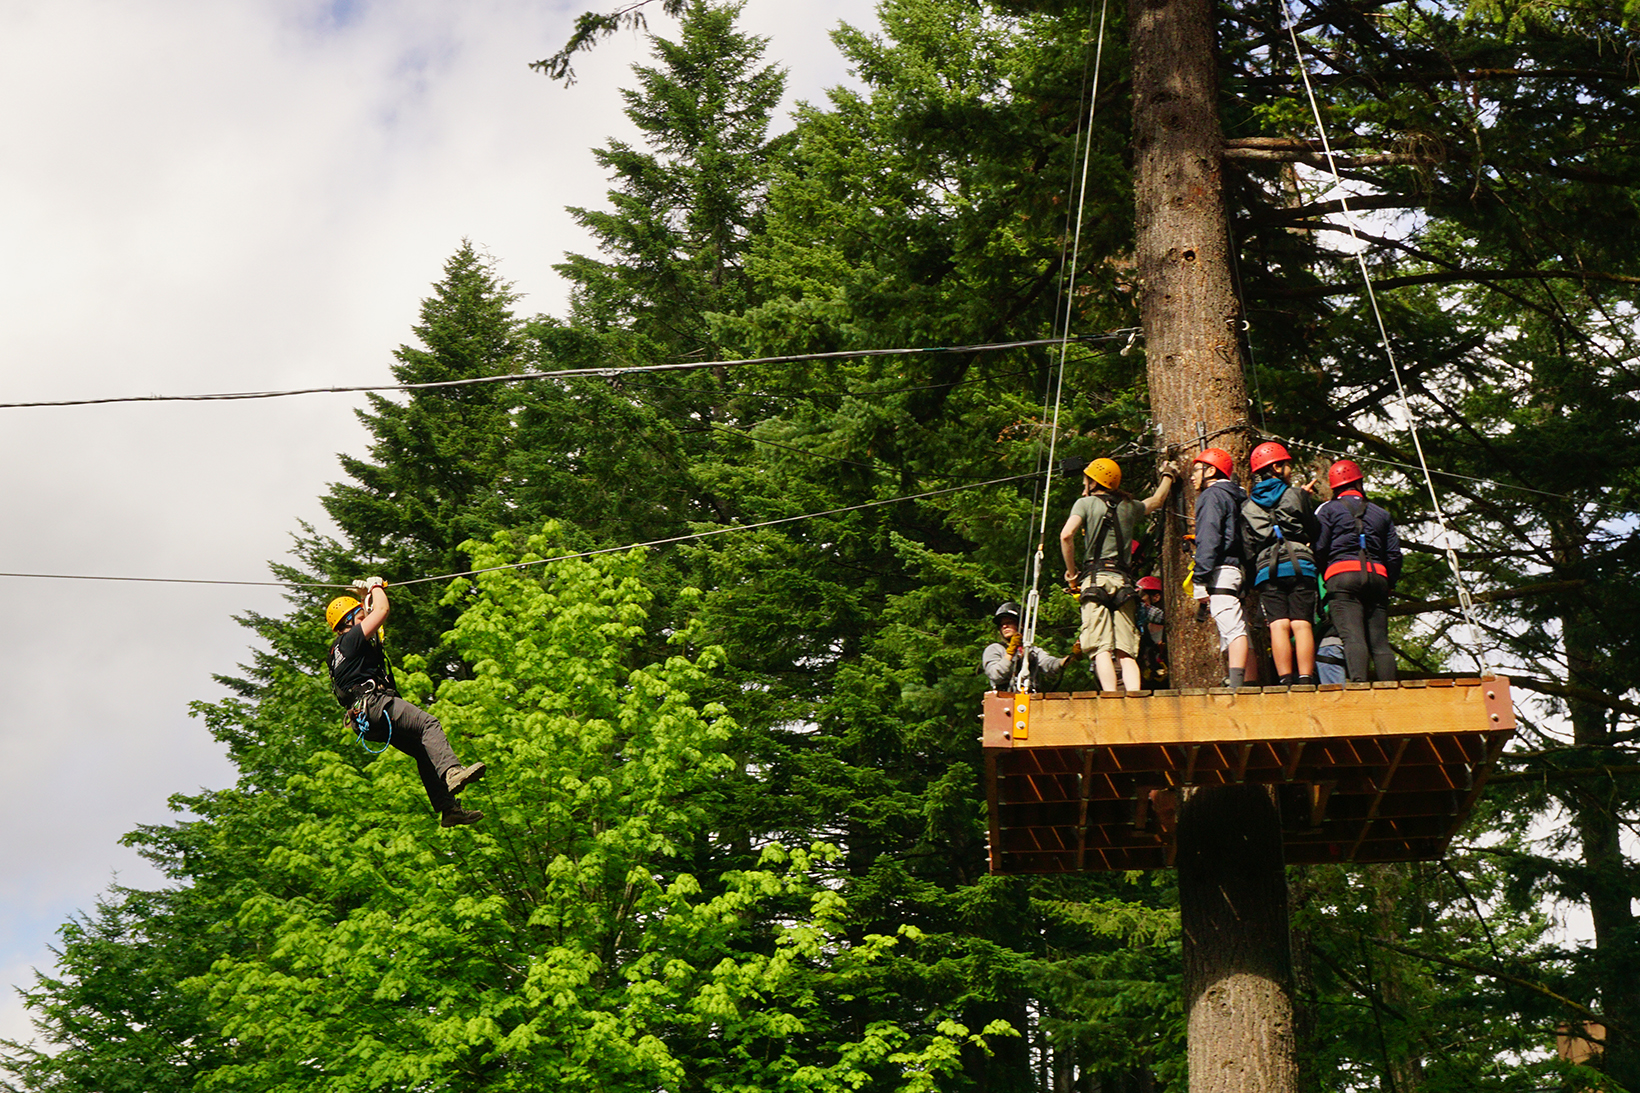 A group of people high up on a platform in the trees ziplining at Skamania Lodge Adventures